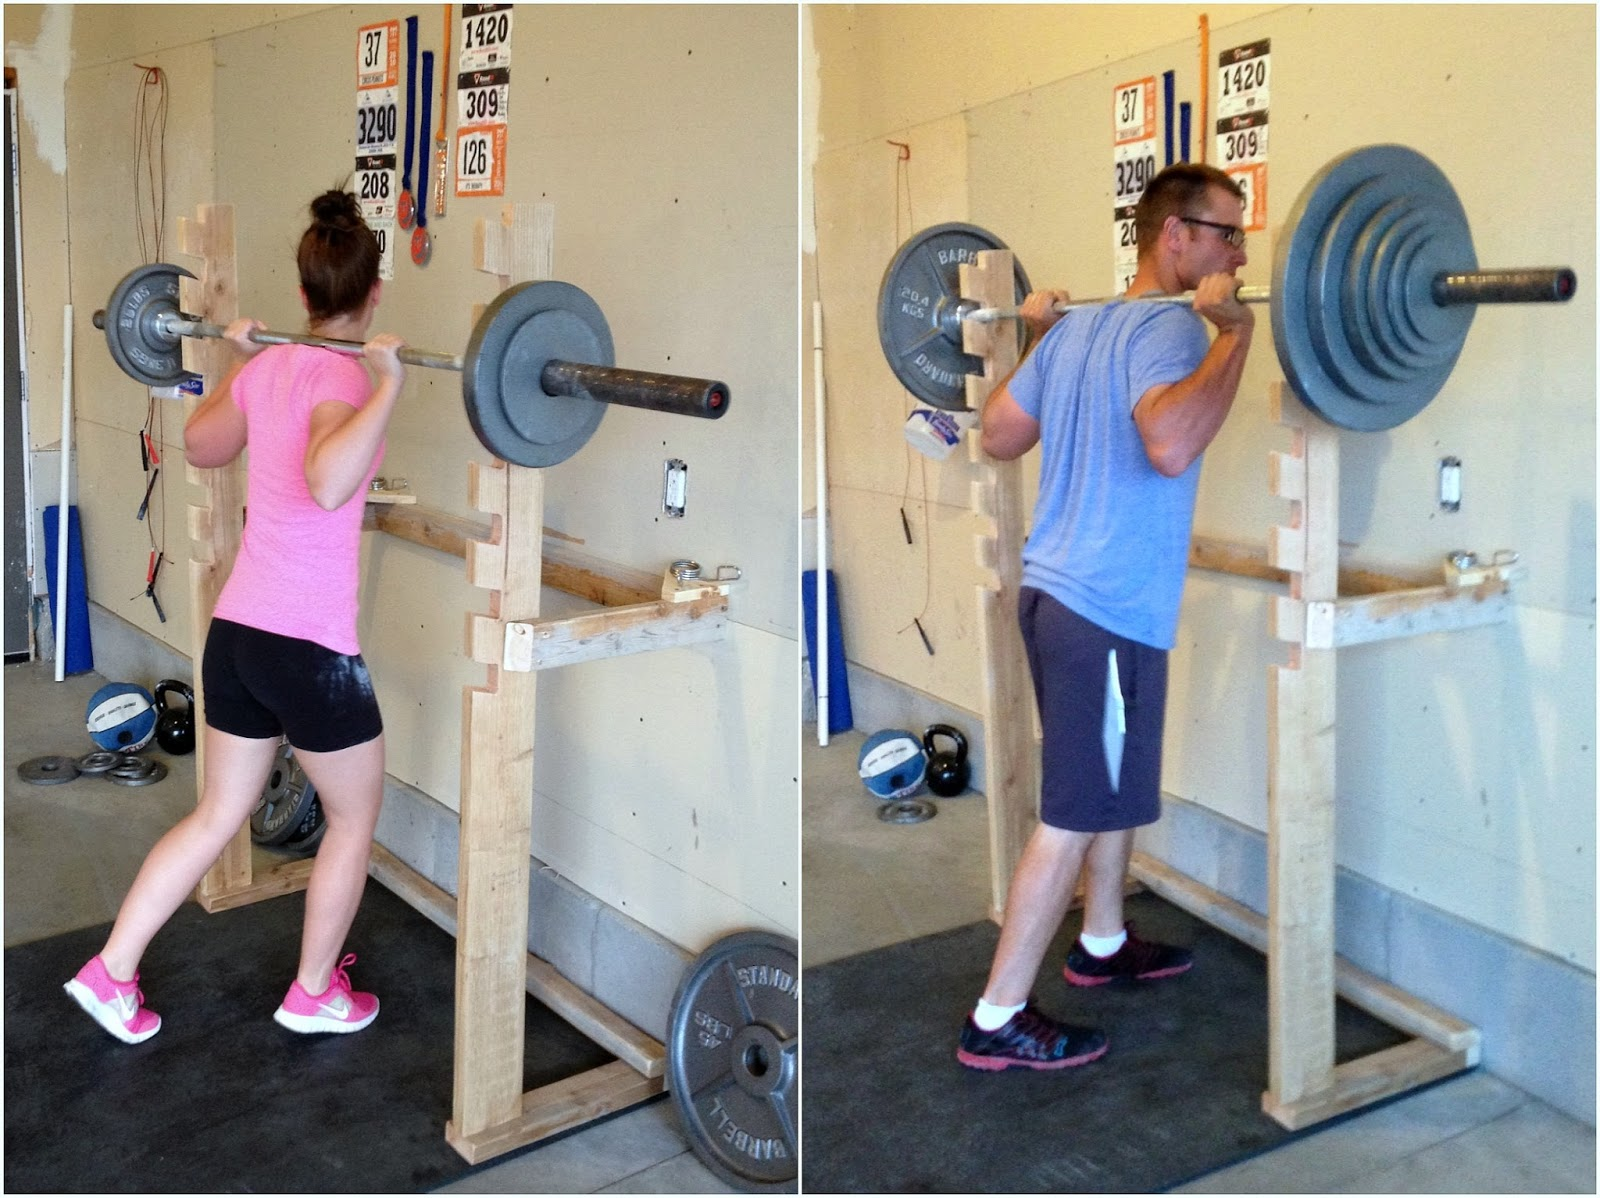 Diy crossfit garage gym part 2 fitness for A squat rack